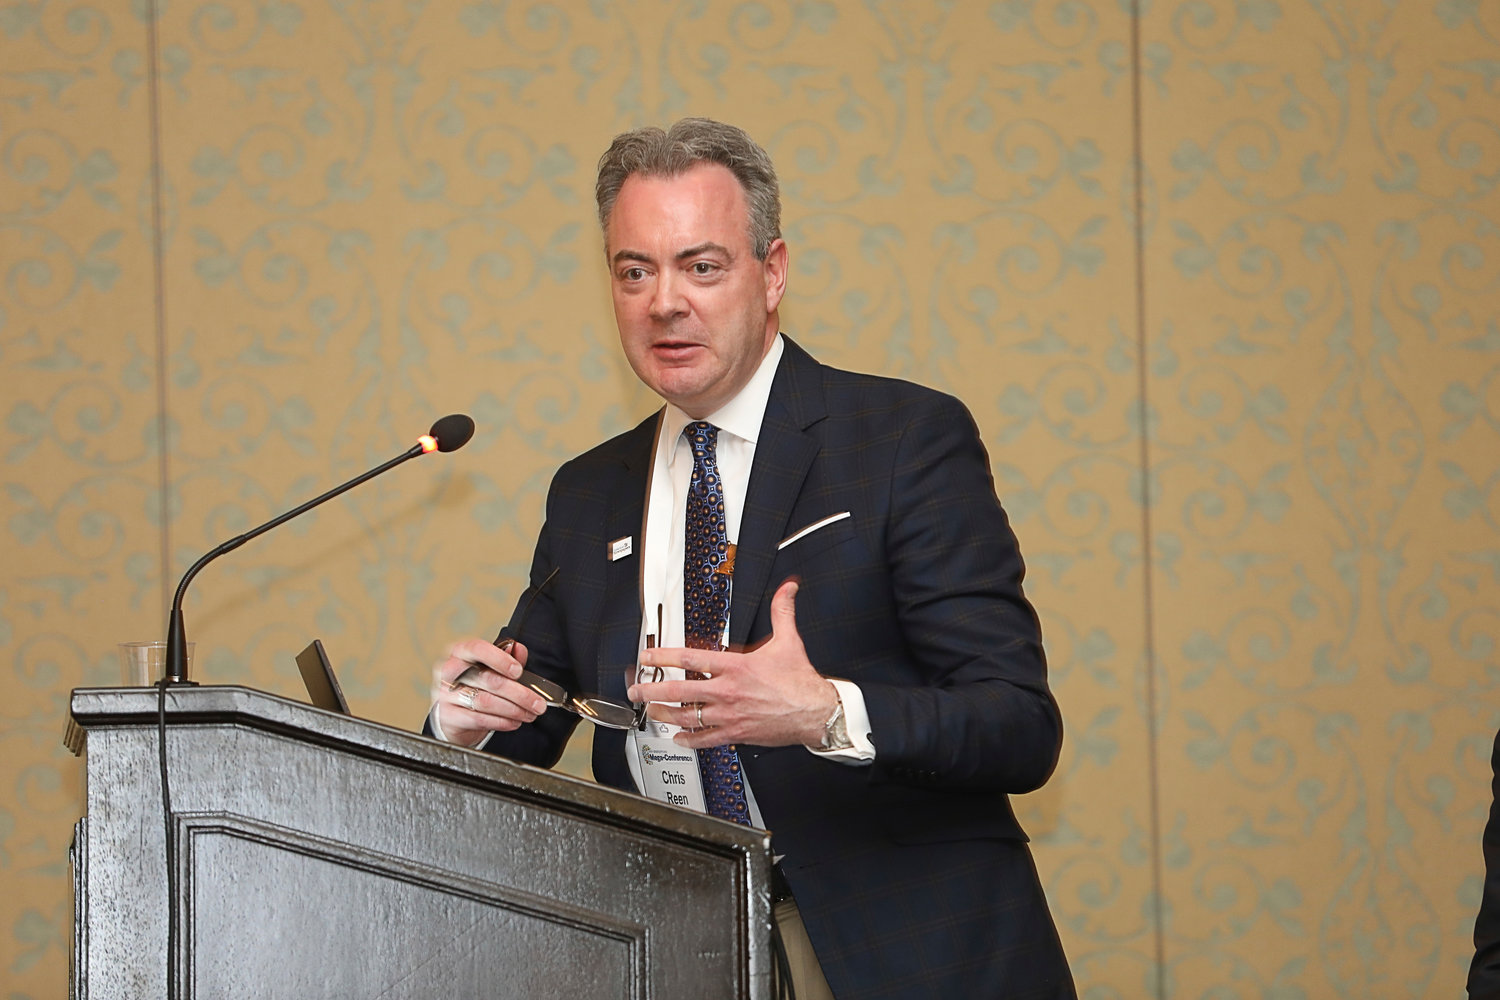 Chris Reen, publisher of The Gazette in Colorado Springs and president of America's Newspapers, at the 2020 Mega-Conference. (Bob Booth).